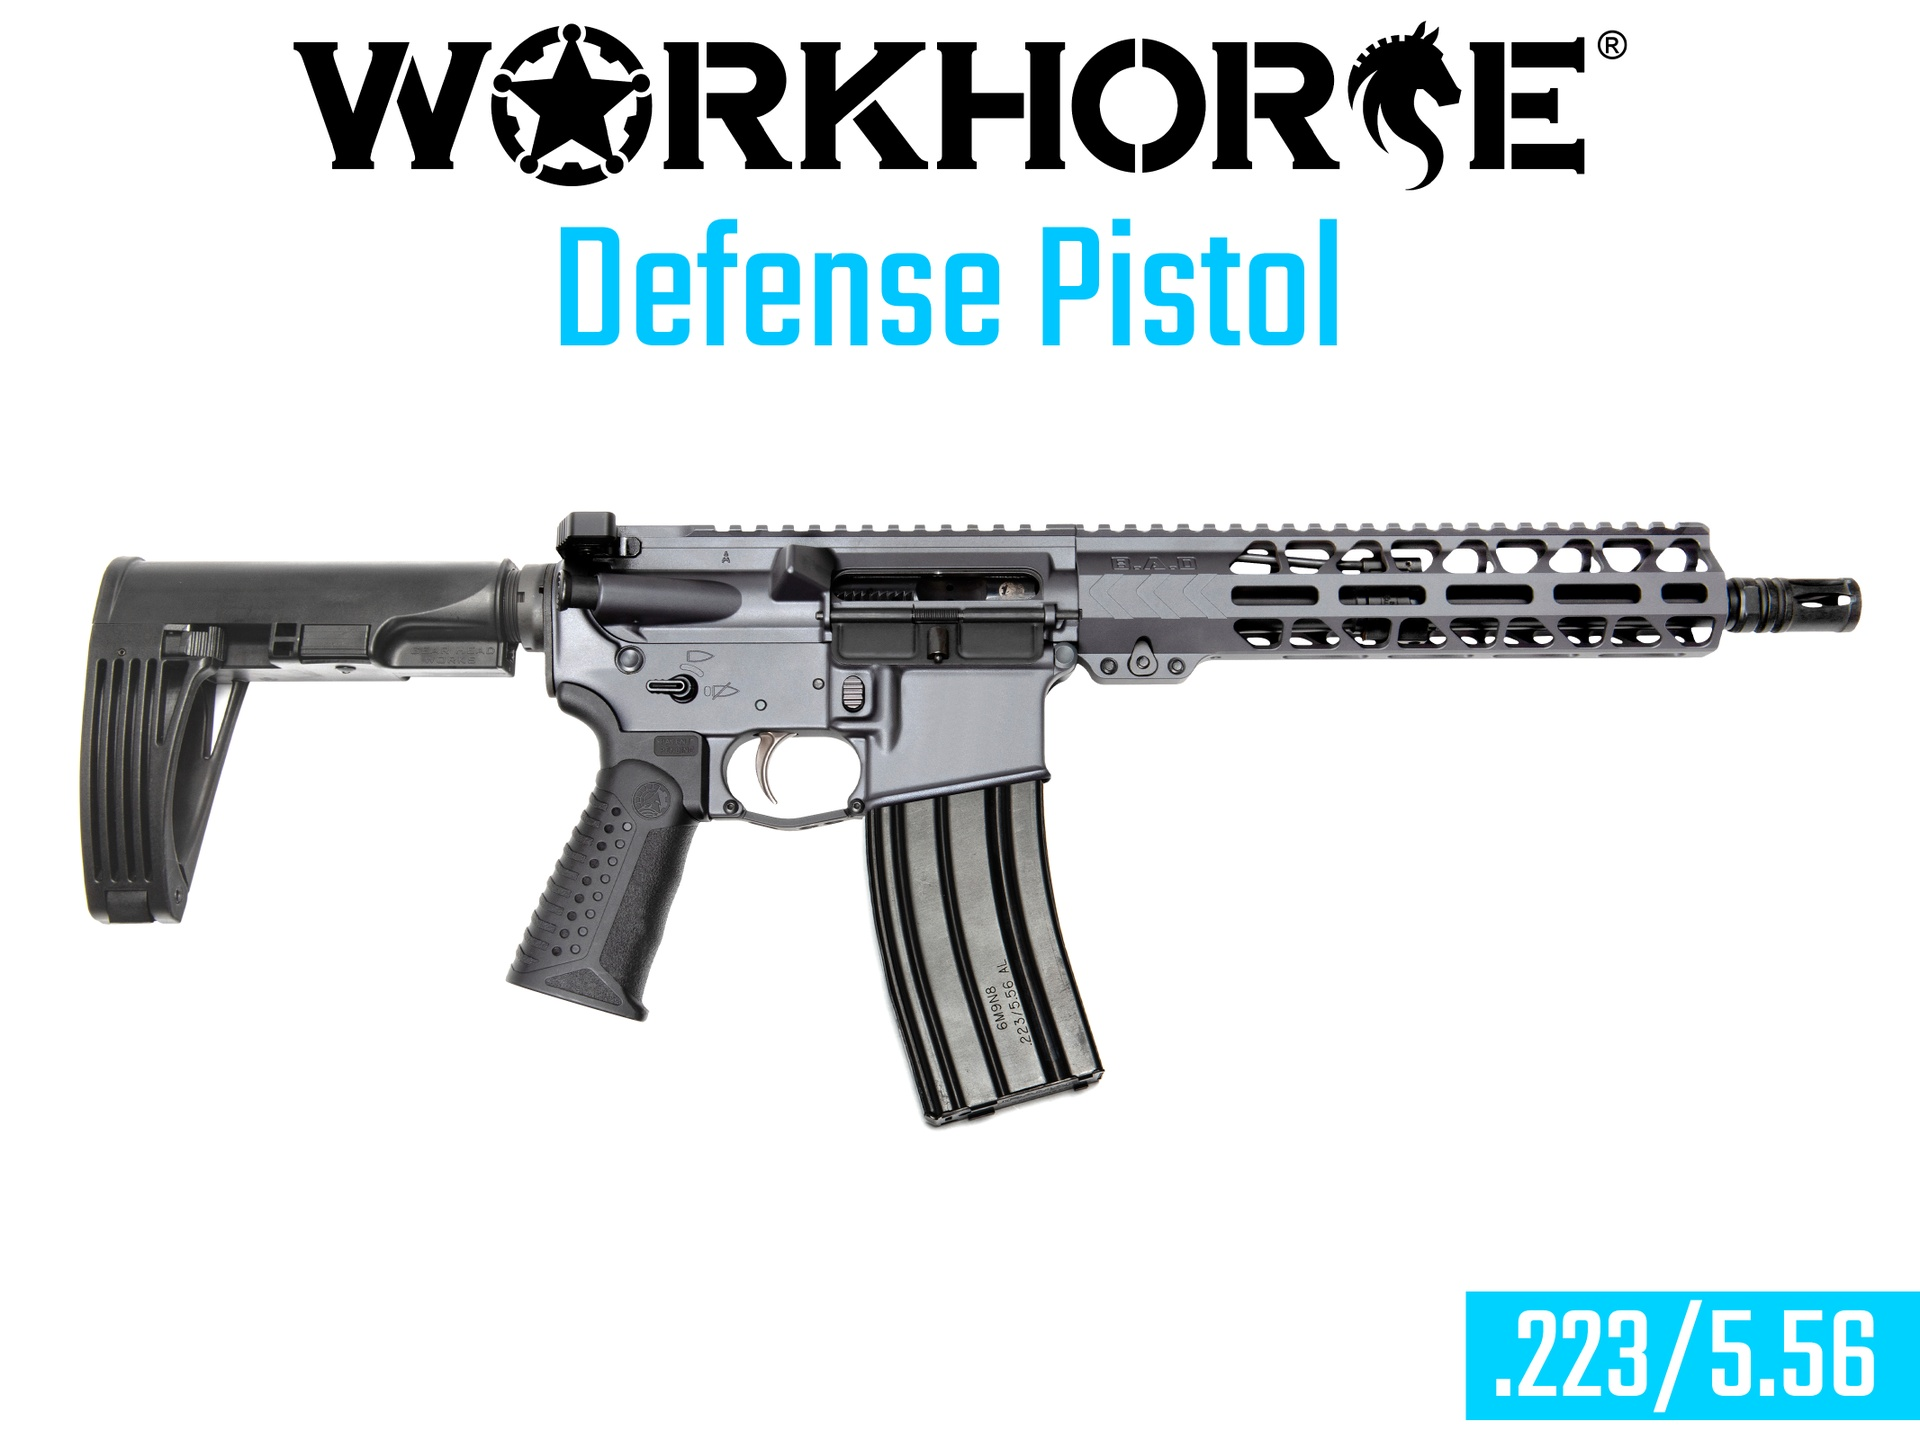 WORKHORSE® DEFENSE PISTOL